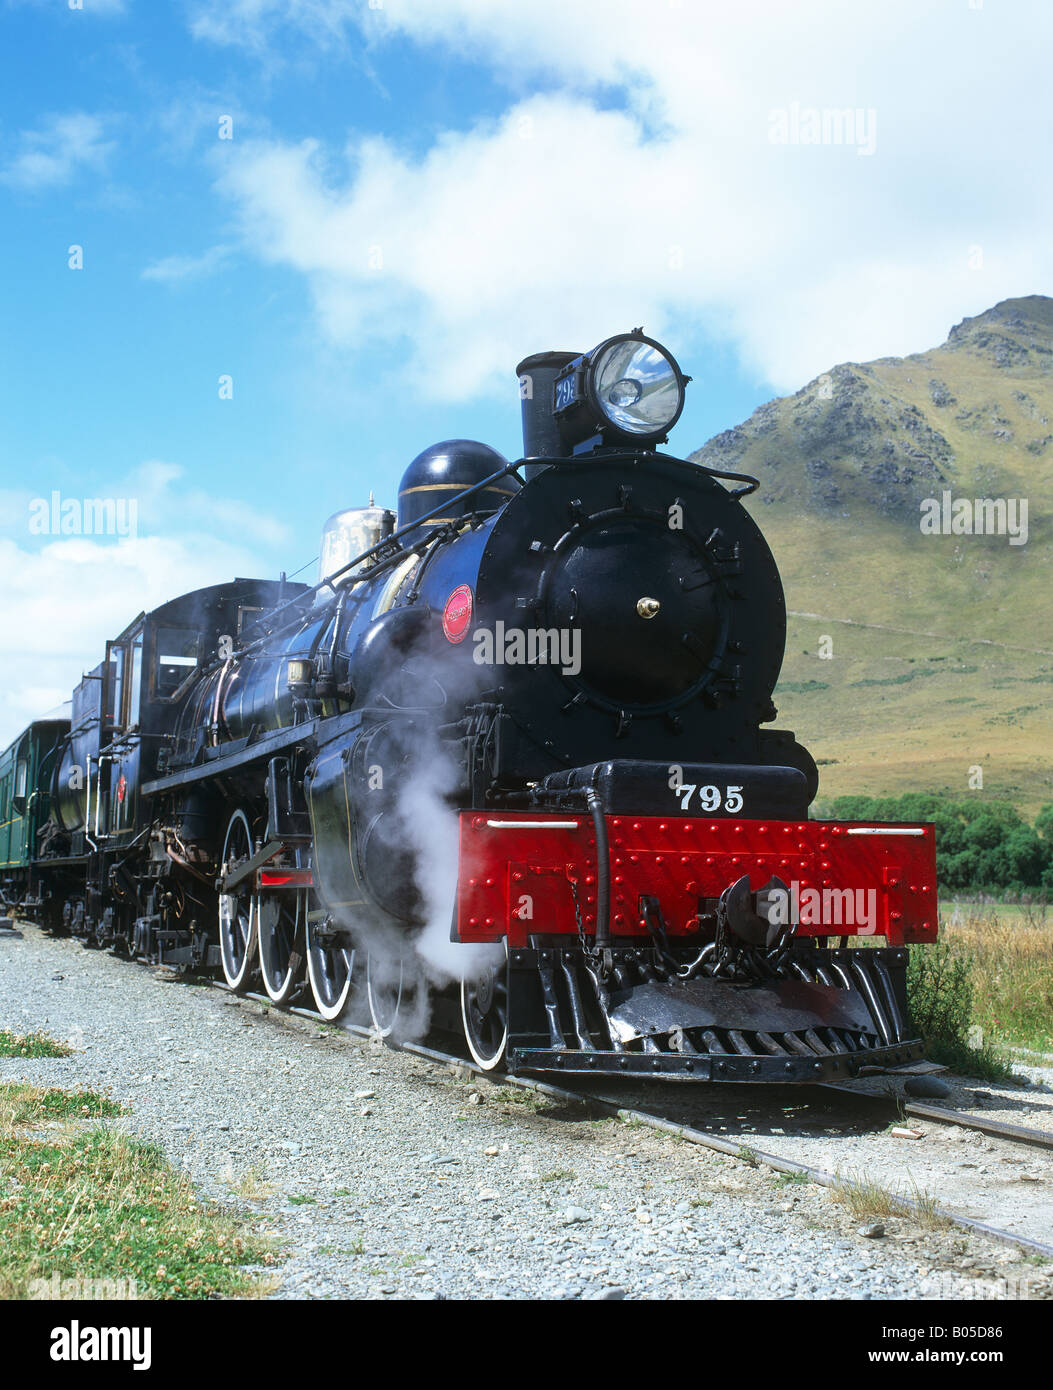 Kingston Flyer Steam Engine, Fairlight station, Otago, New Zealand - Stock Image